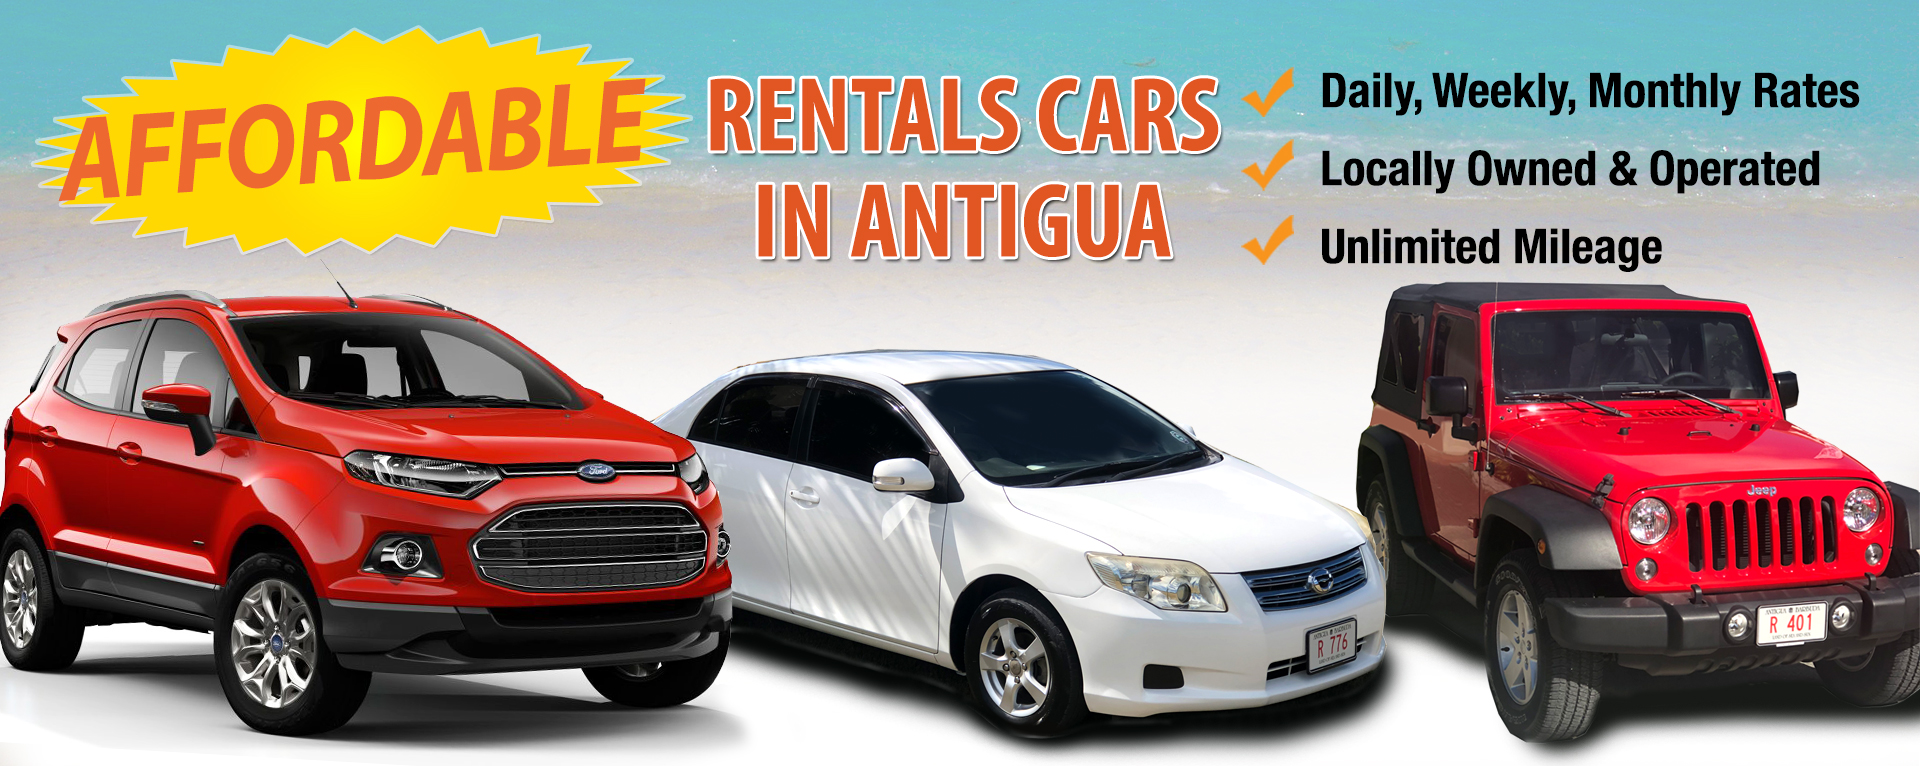 Super Summer Savings Rent a vehicle for 3 days and get the next day FREE!